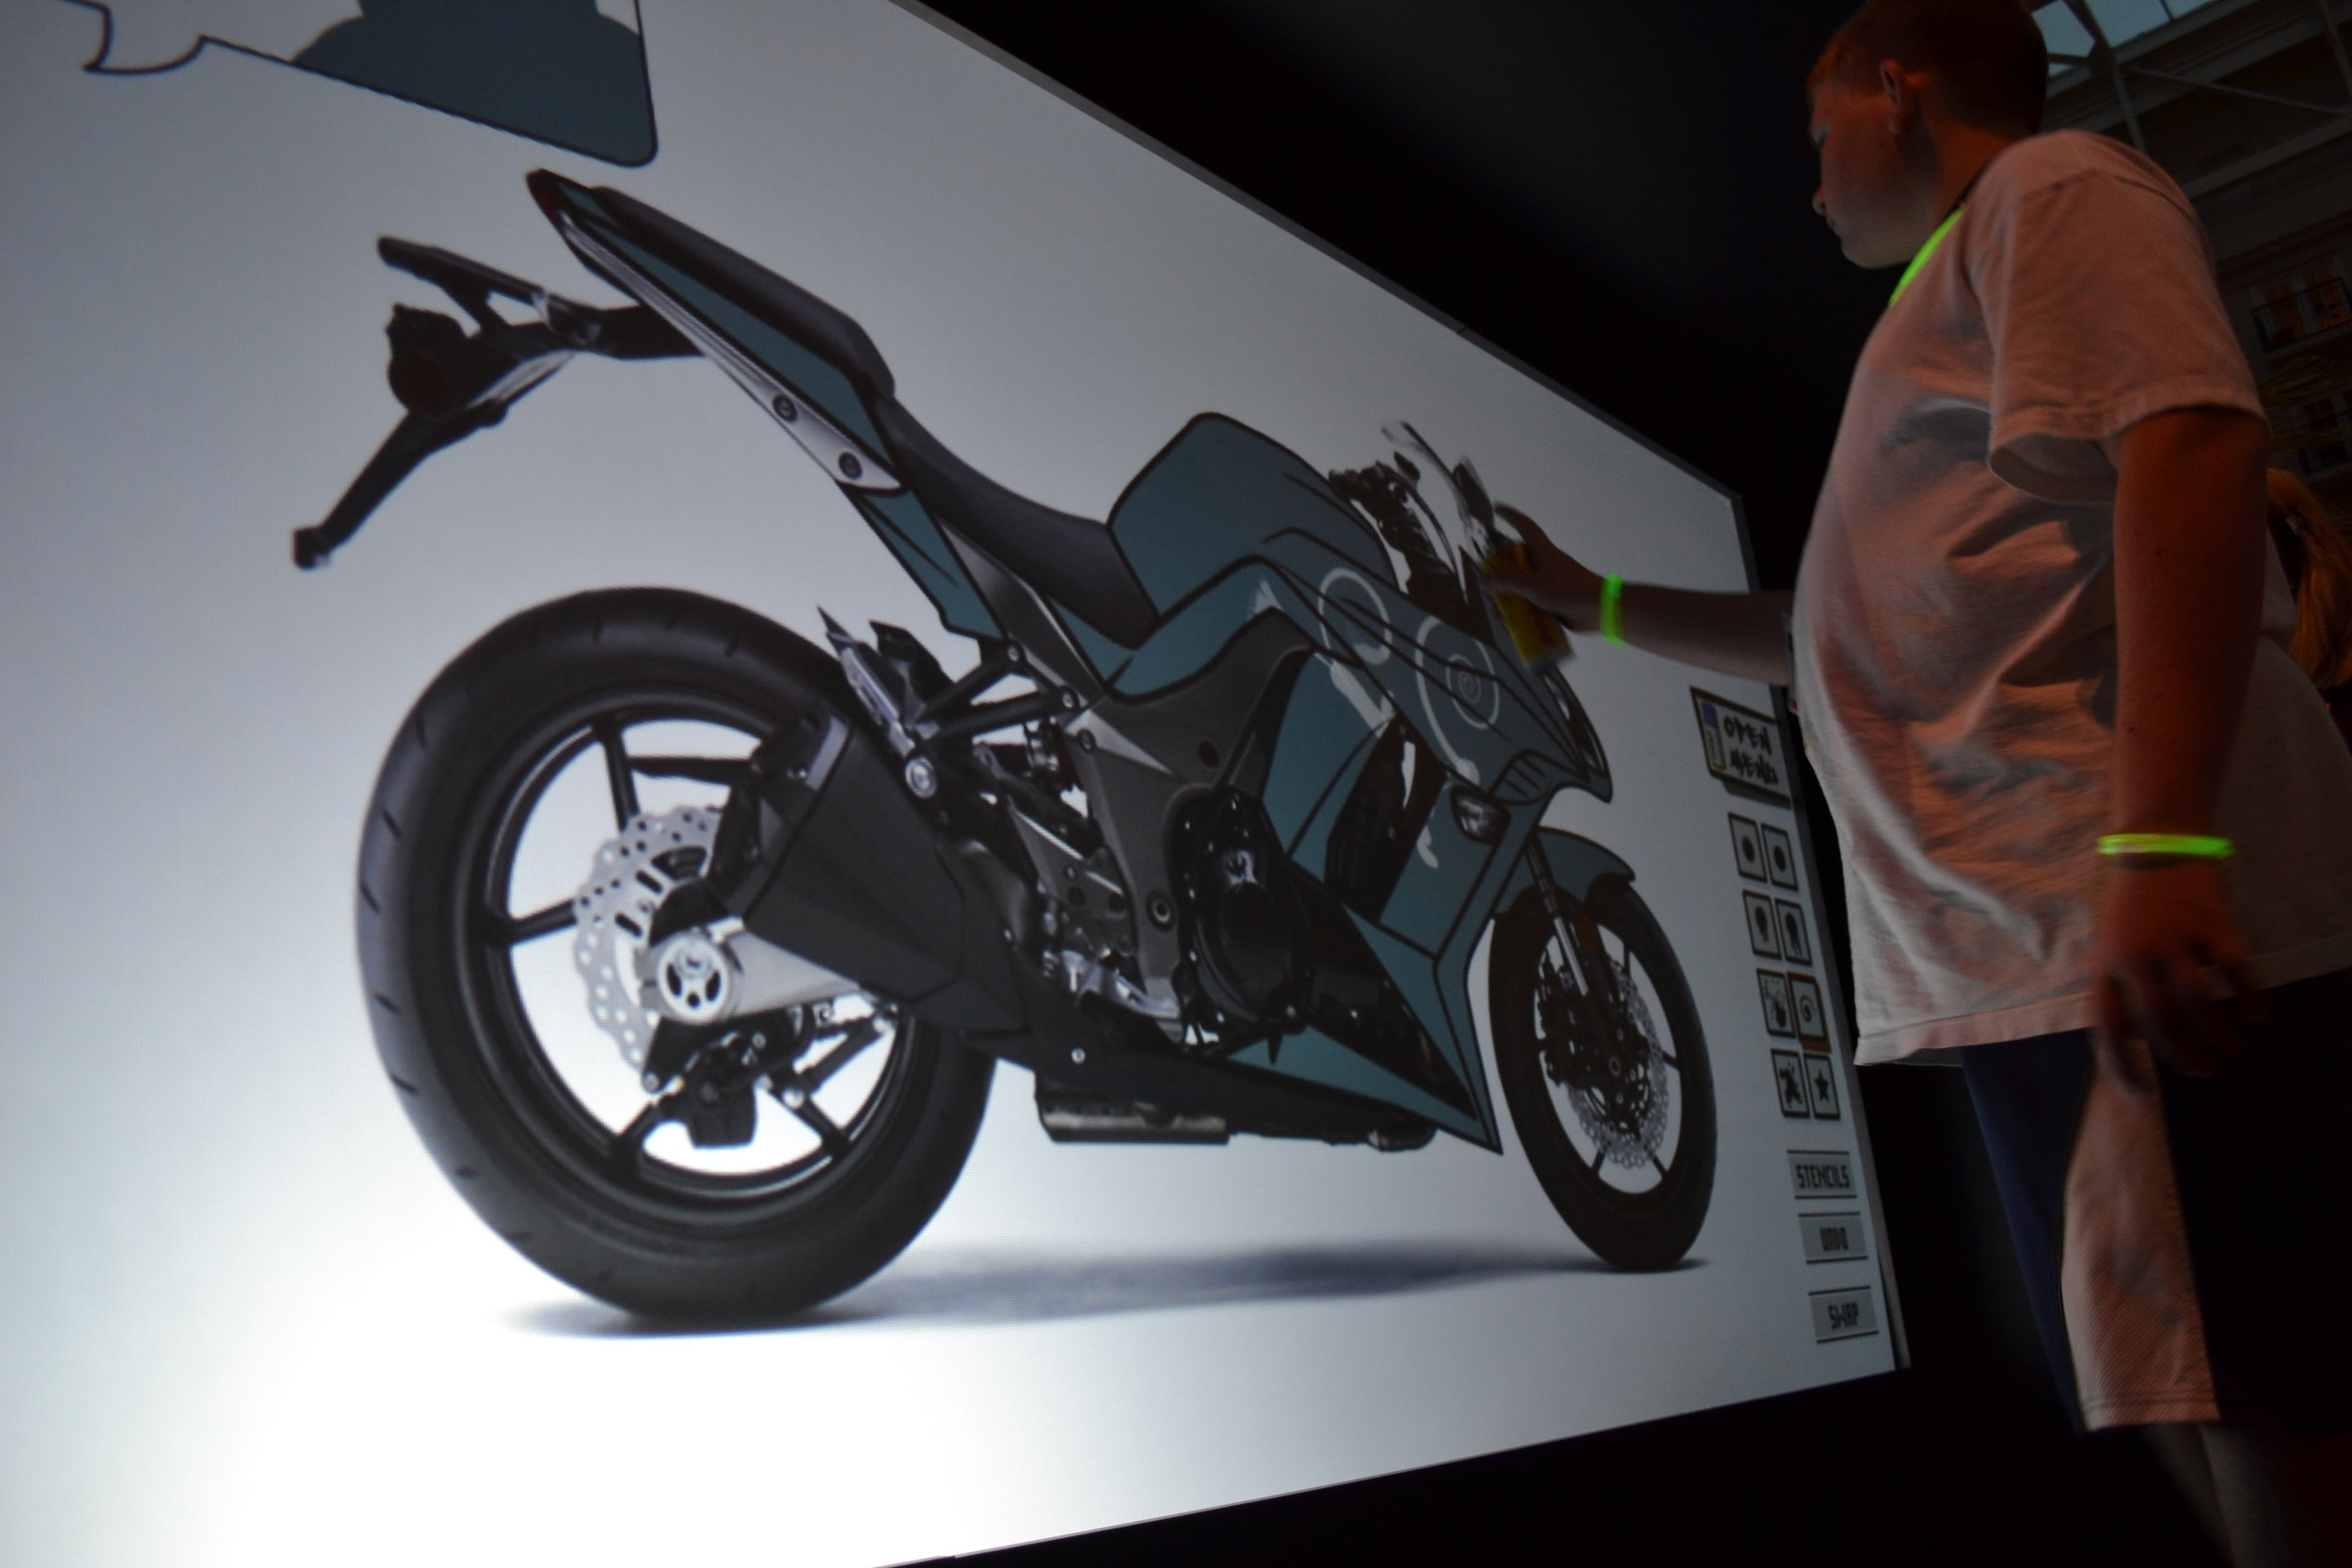 kawasaki-design-a-bike_6243430651_o_28911917380_o.jpg